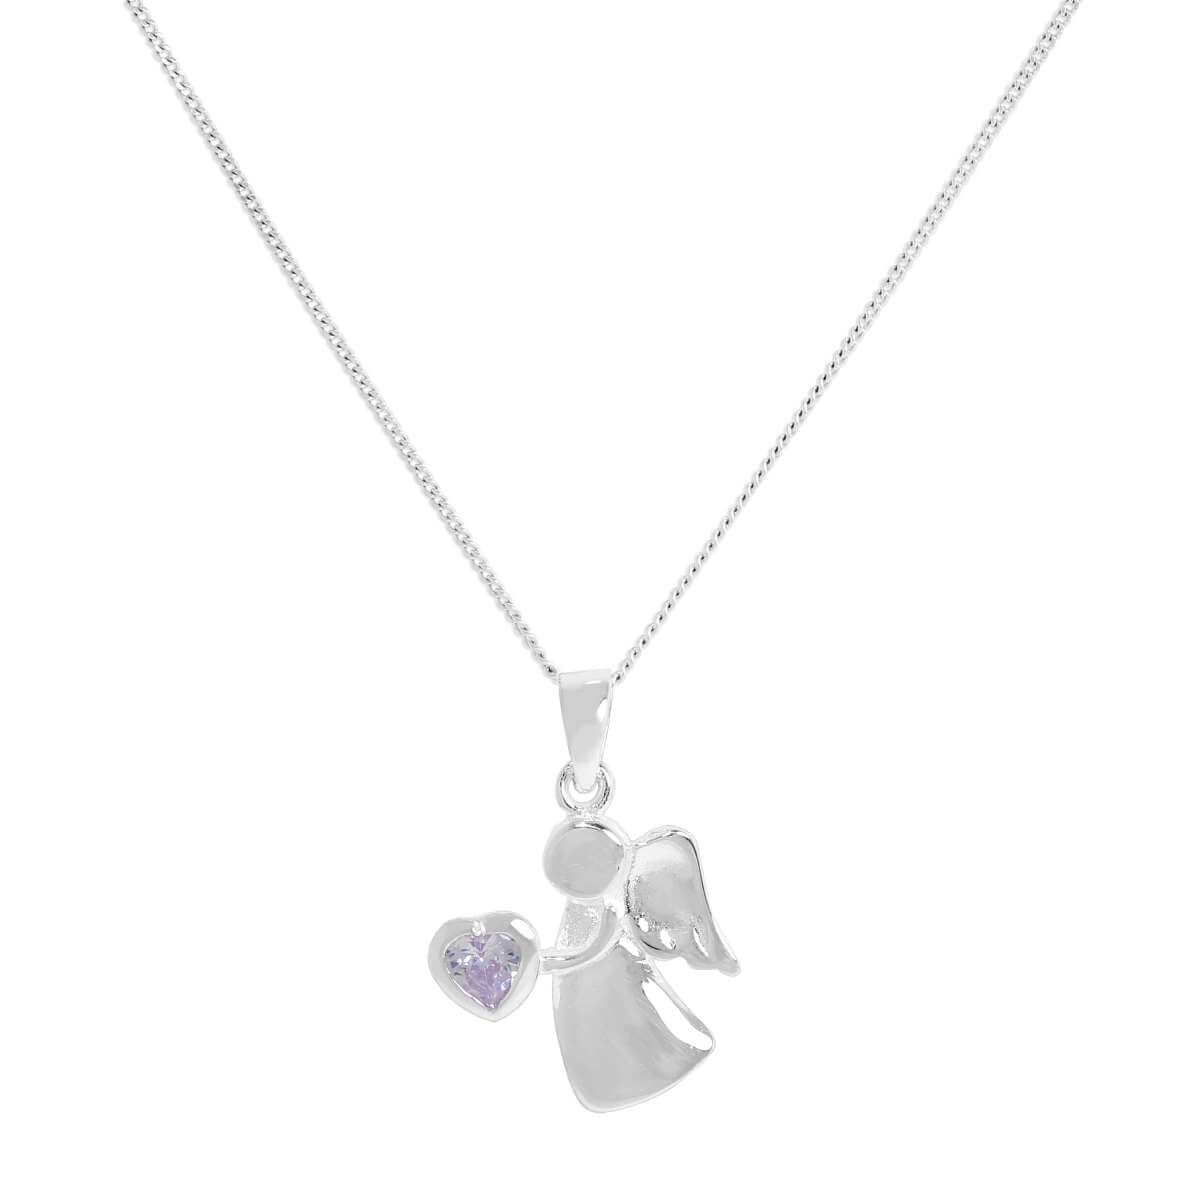 Sterling Silver & Alexandrite CZ Crystal June Birthstone Angel Pendant Necklace 14 - 32 Inches